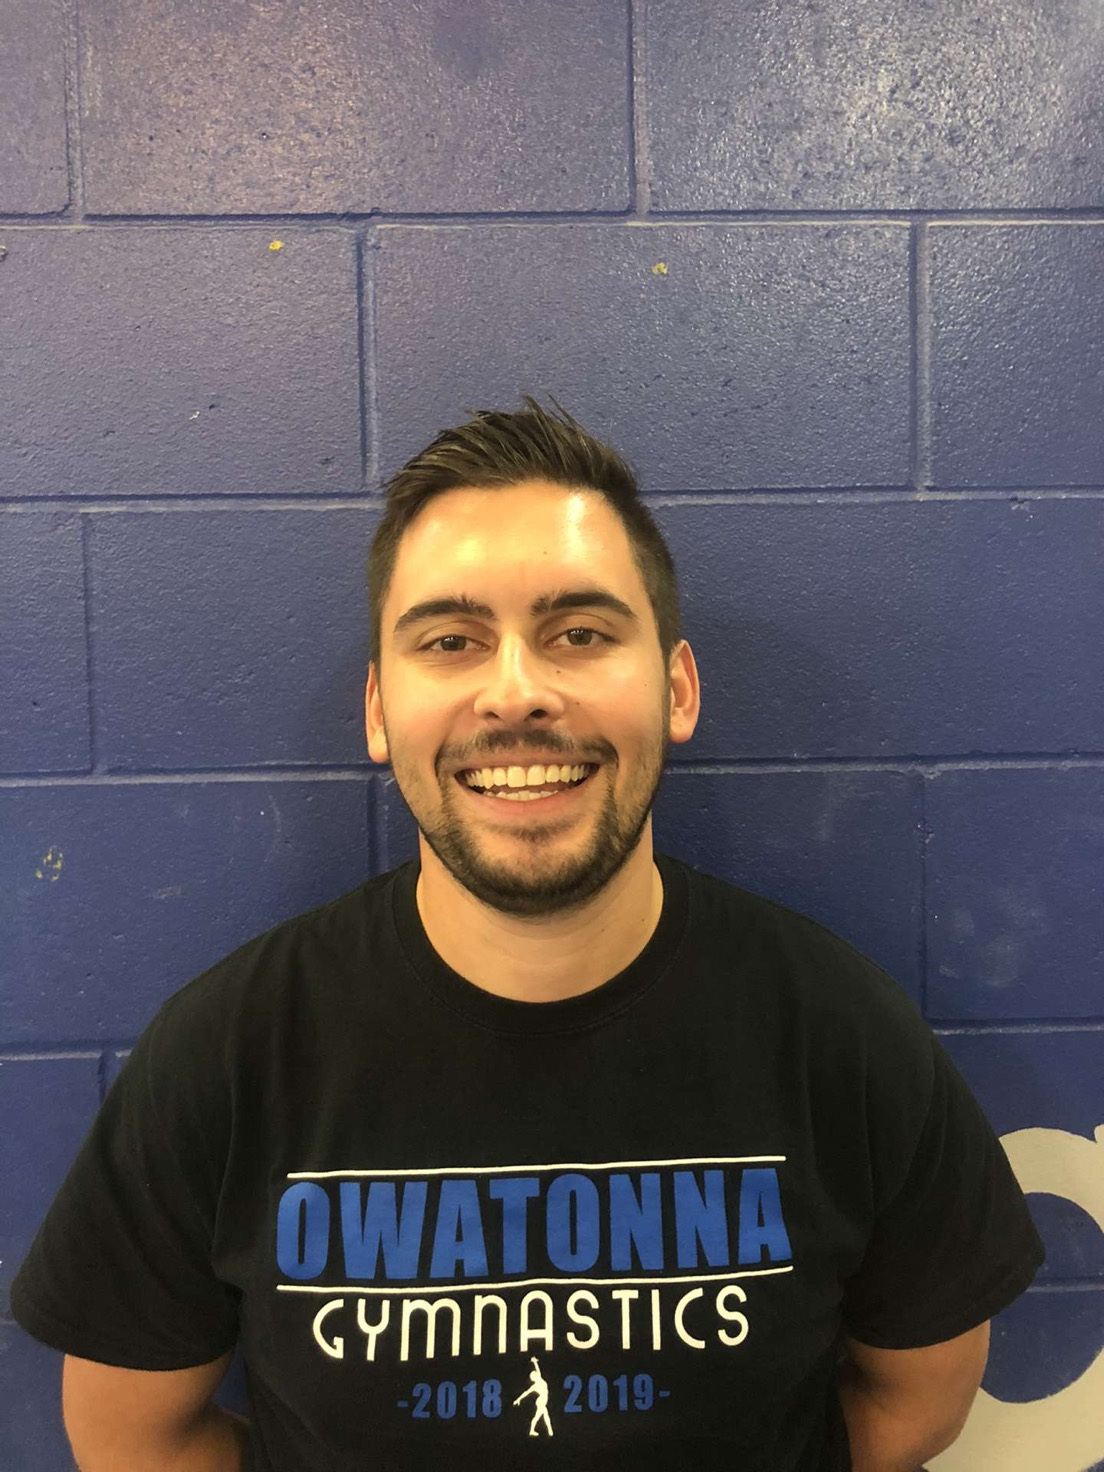 Owatonna's new gymnastics Coach Evan Moe